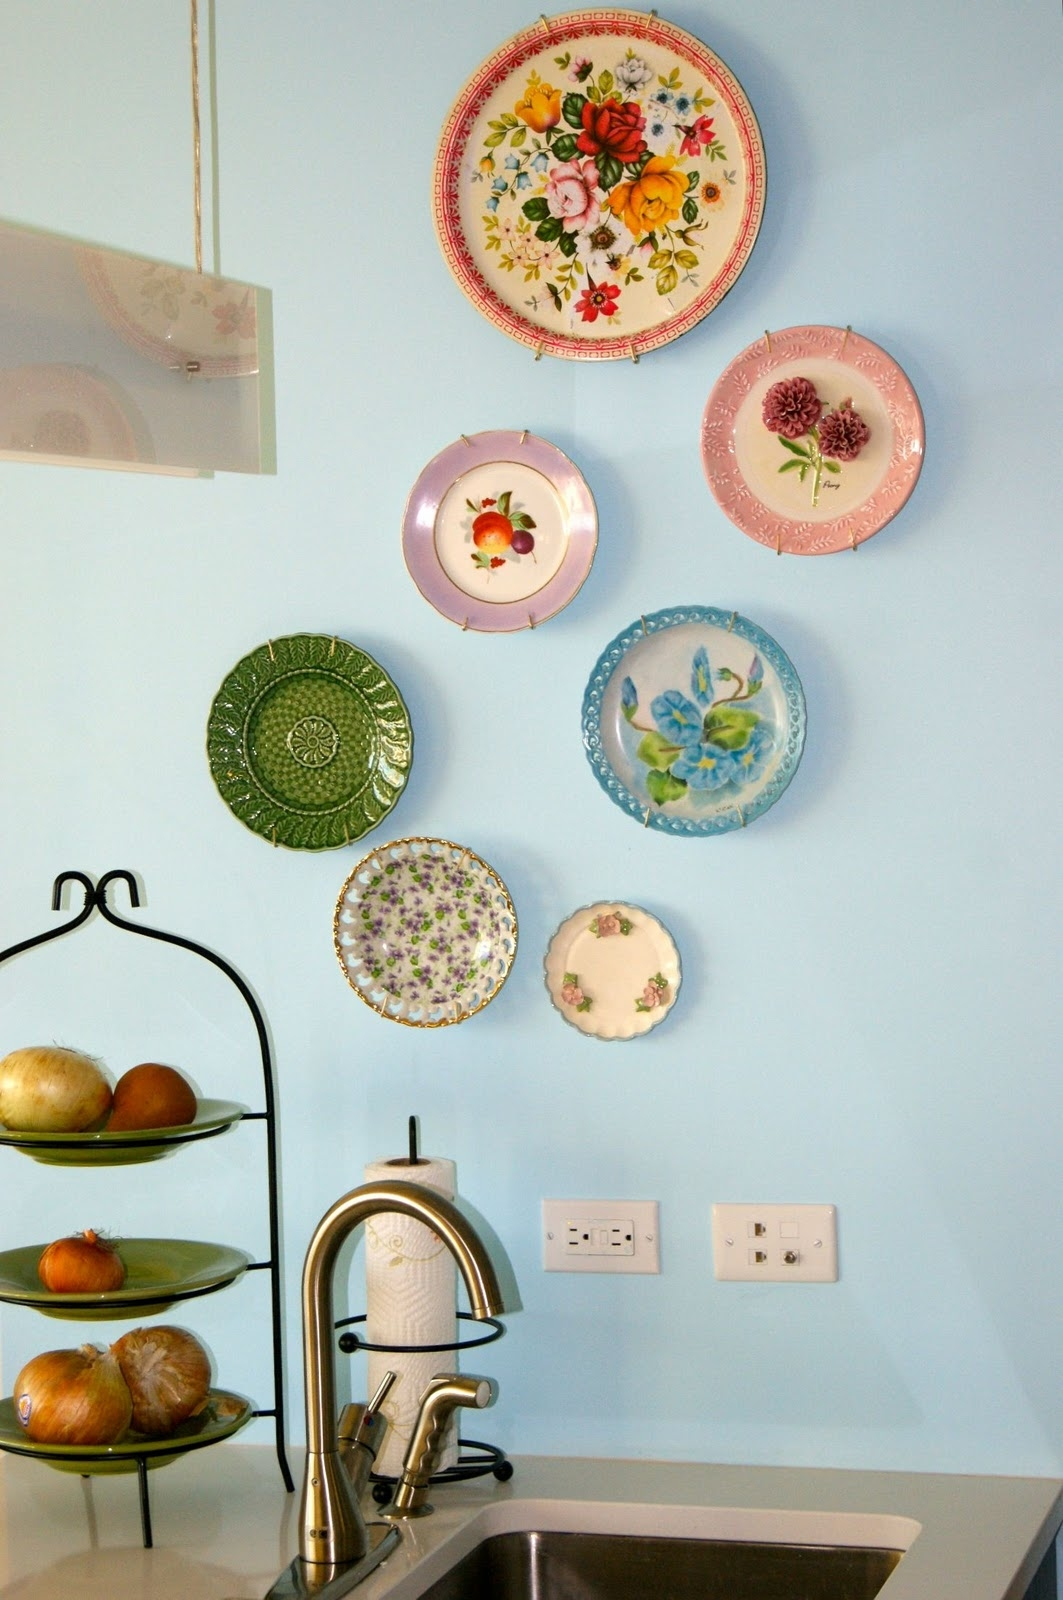 Decorating Kitchen Walls With Plates